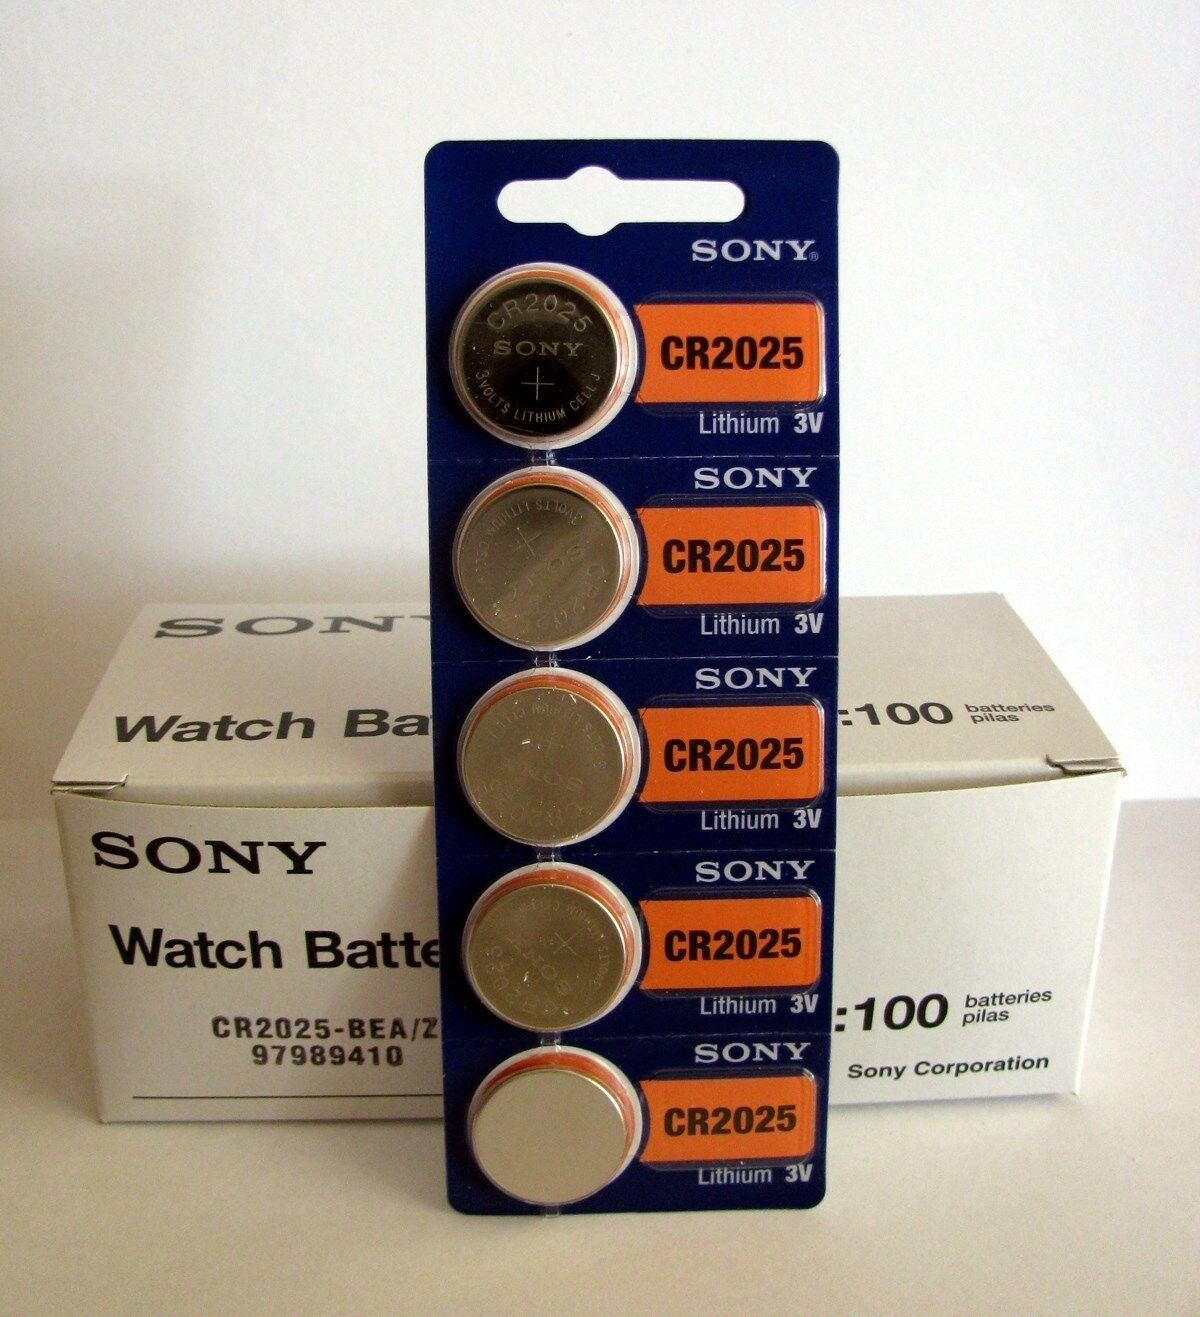 100 pc SONY CR2025 CR 2025 3V Lithium Batteries Expire 2028 (100 Coin Cells)